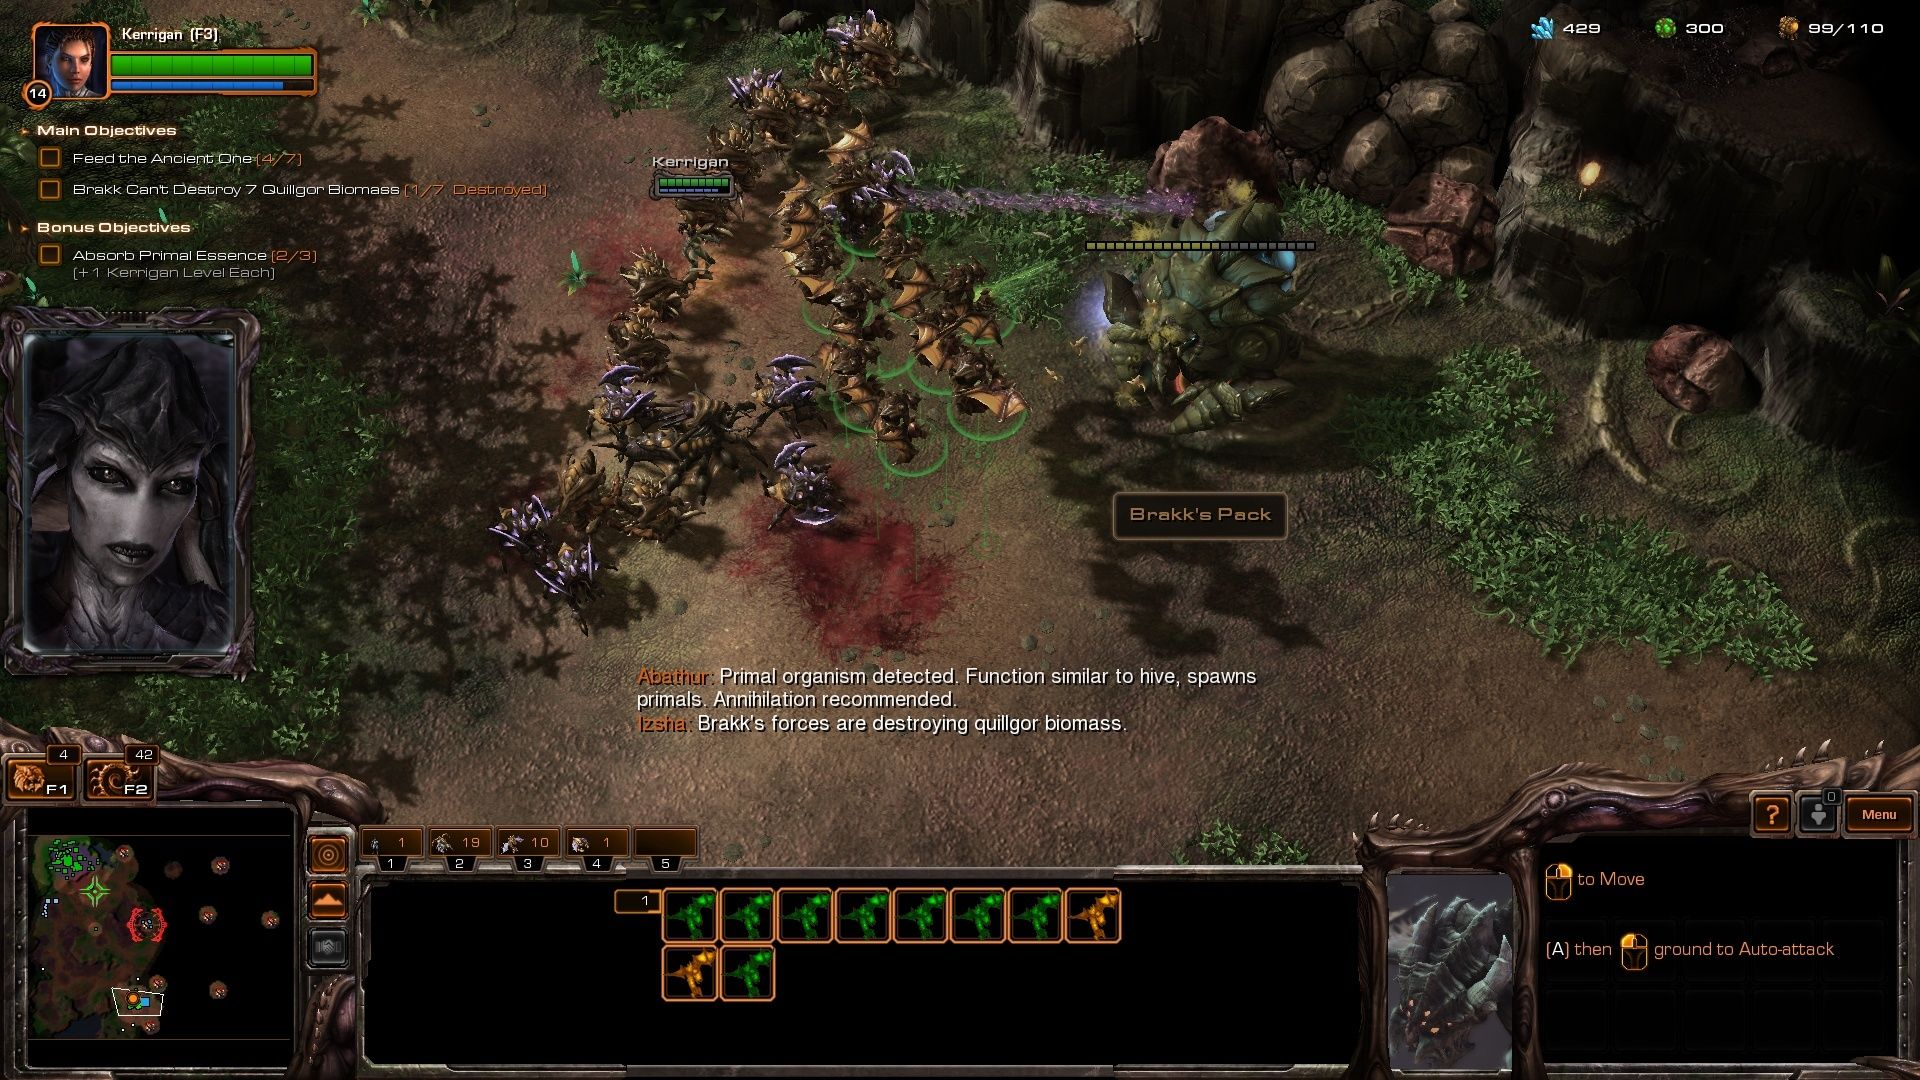 StarCraft II: Heart of the Swarm Screenshots for Windows - MobyGames